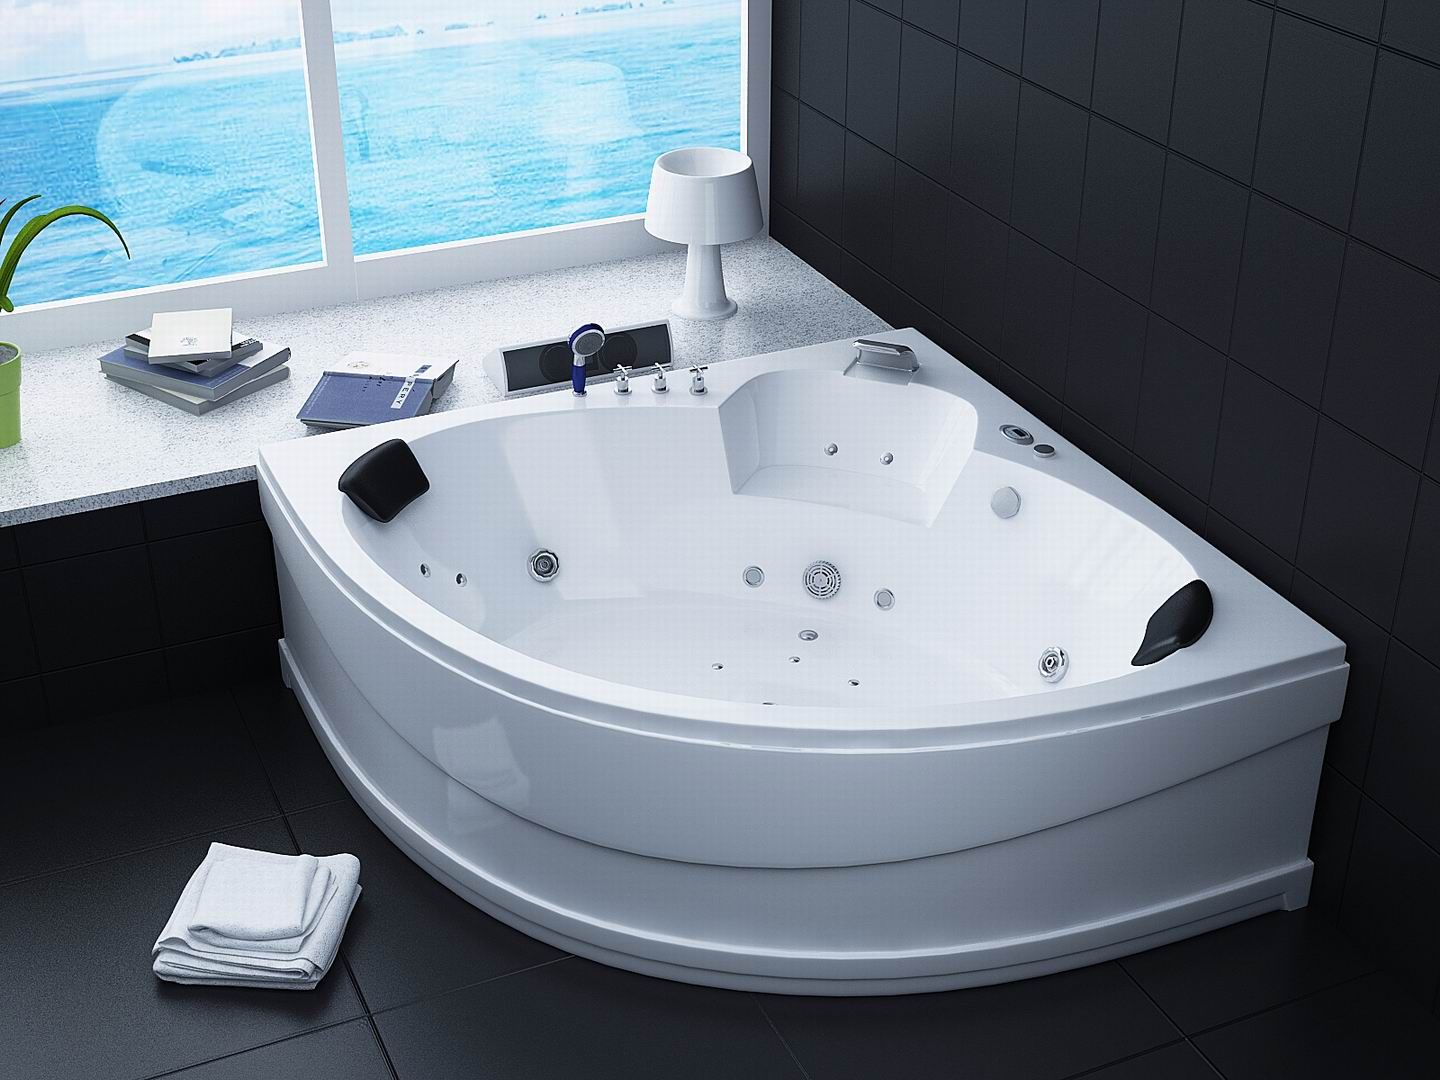 bathtubs | China Jacuzzi Bathtub (MT-NR1801) - large image for ...